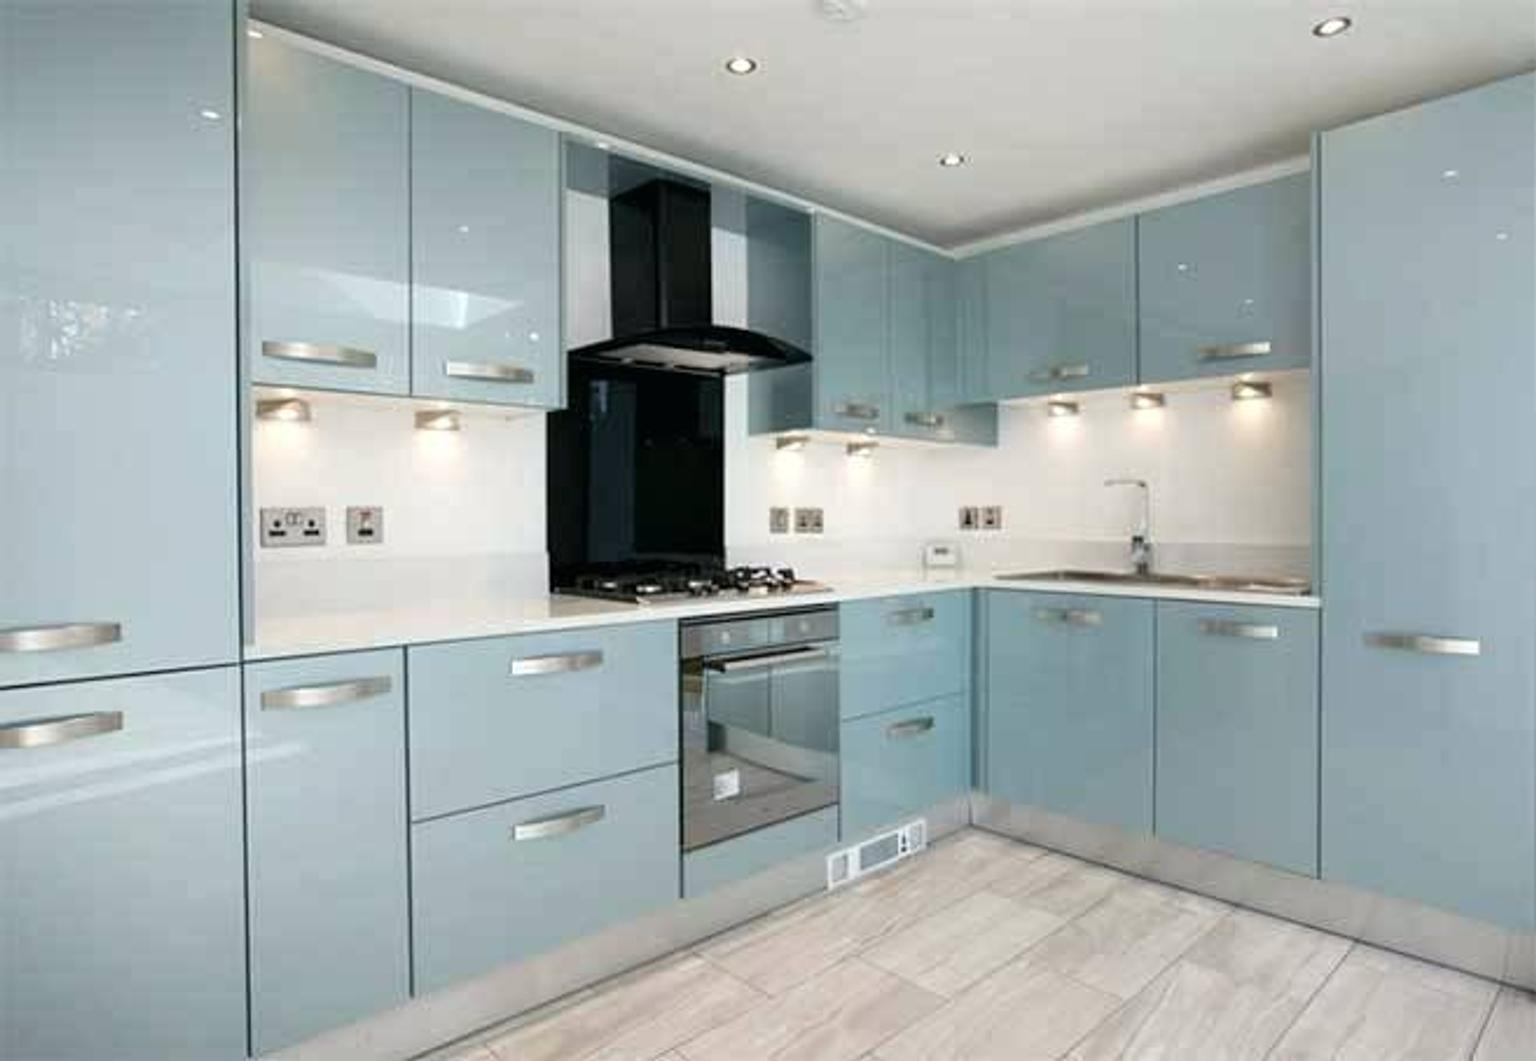 Acrylic High Gloss 5 Kitchen Cabinets New In B16 Birmingham For 89900 For Sale Shpock